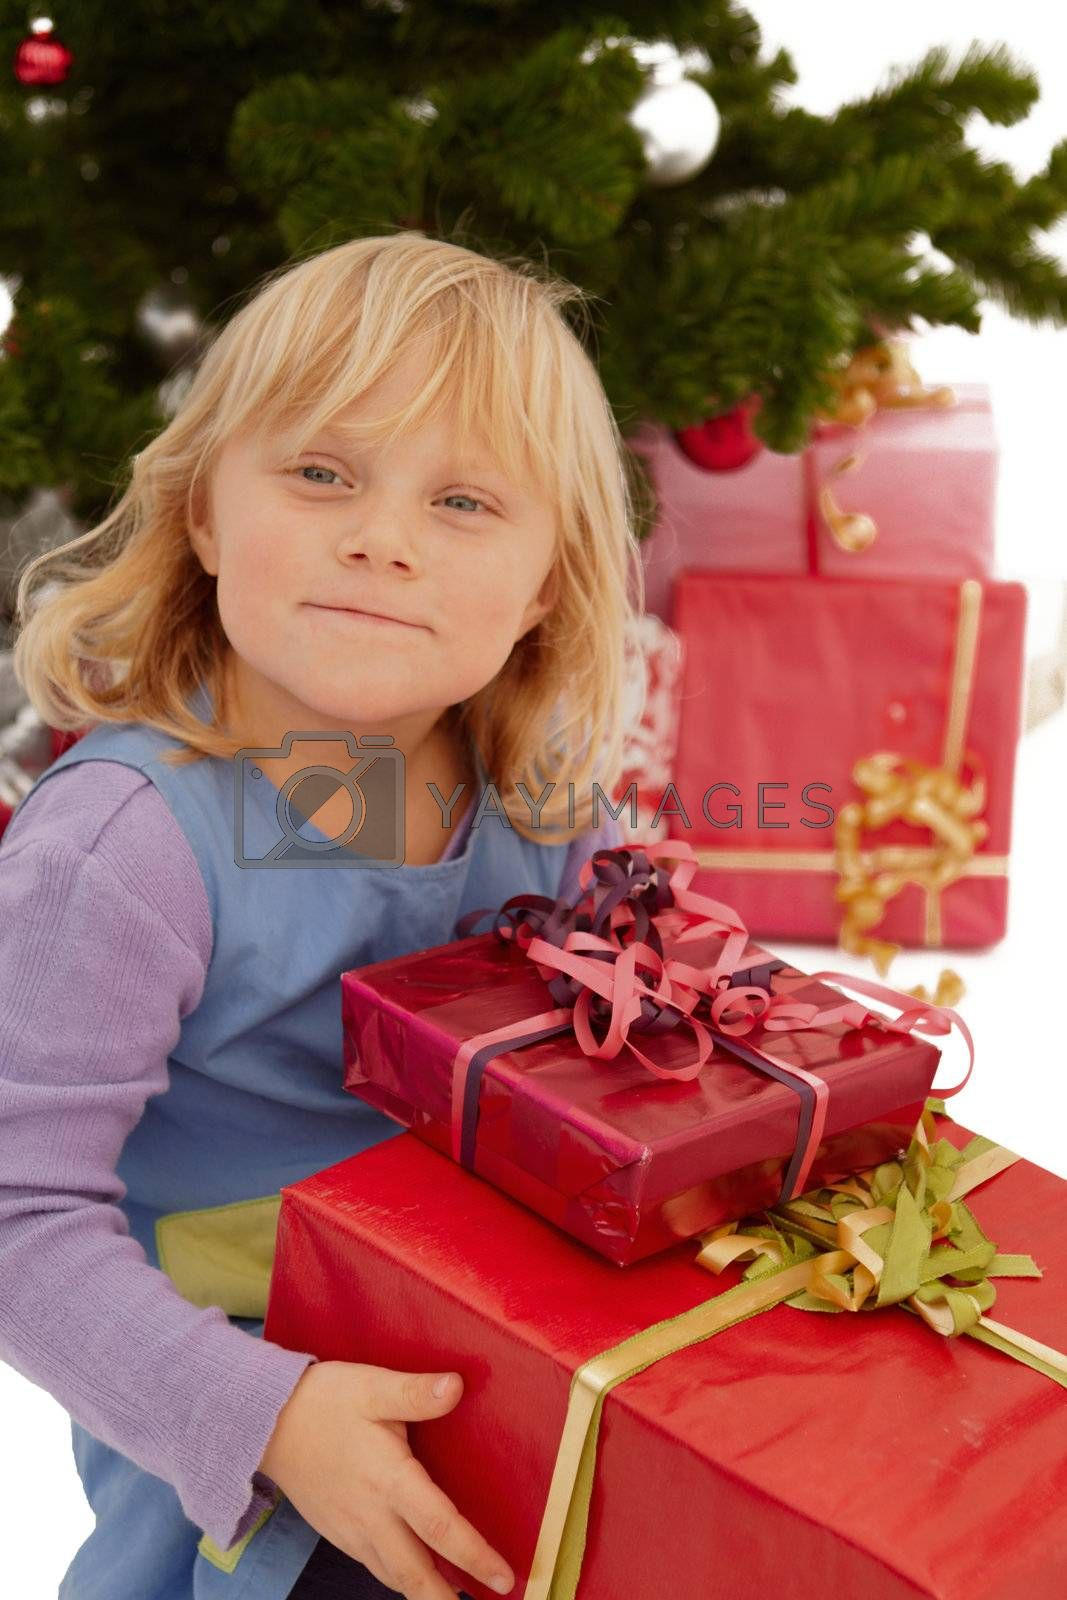 Royalty free image of Christmas - Little girl with lots of presents by FreedomImage